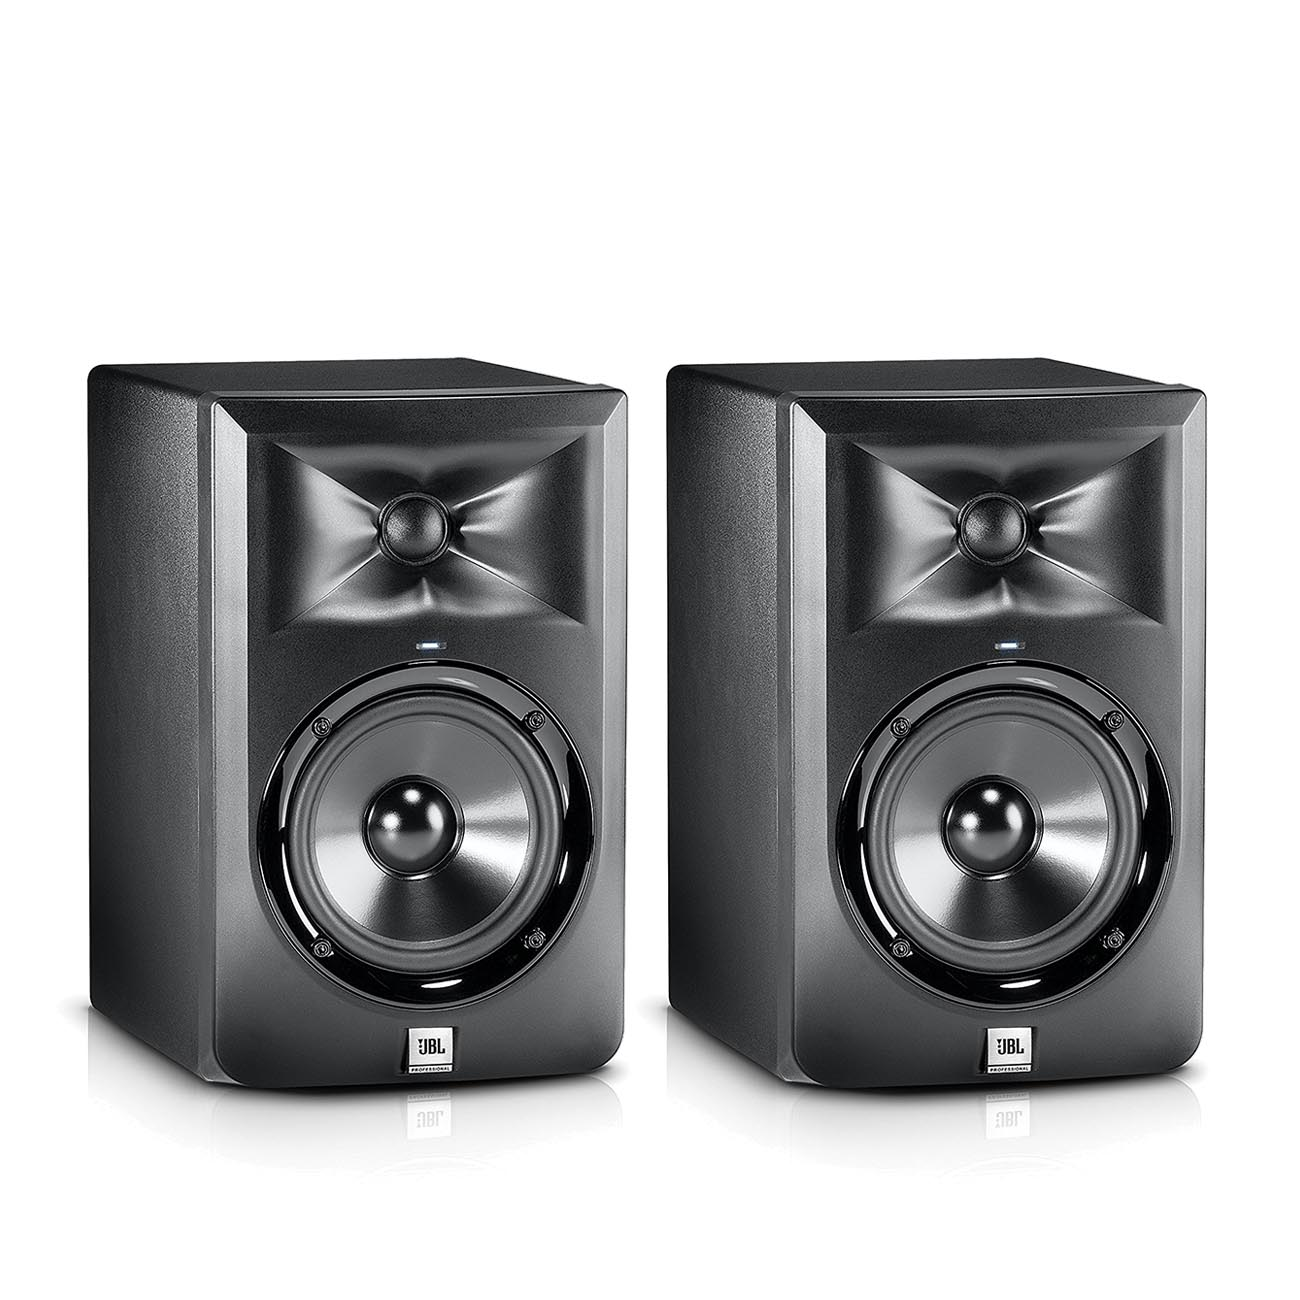 Monitores audio JBL 305